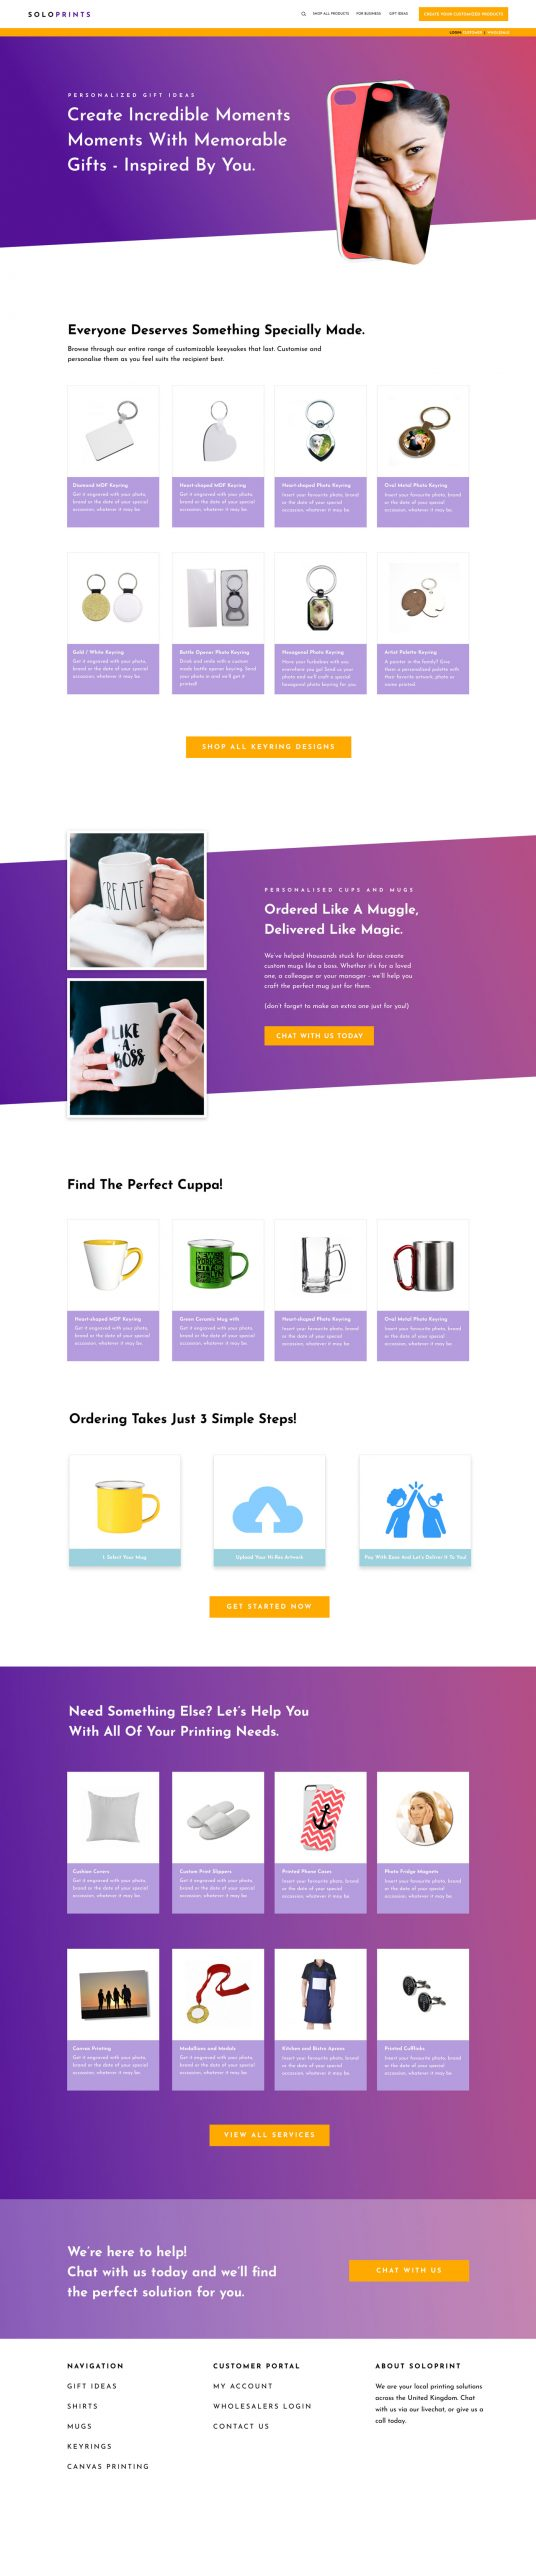 SOLOPRINT.CO.UK